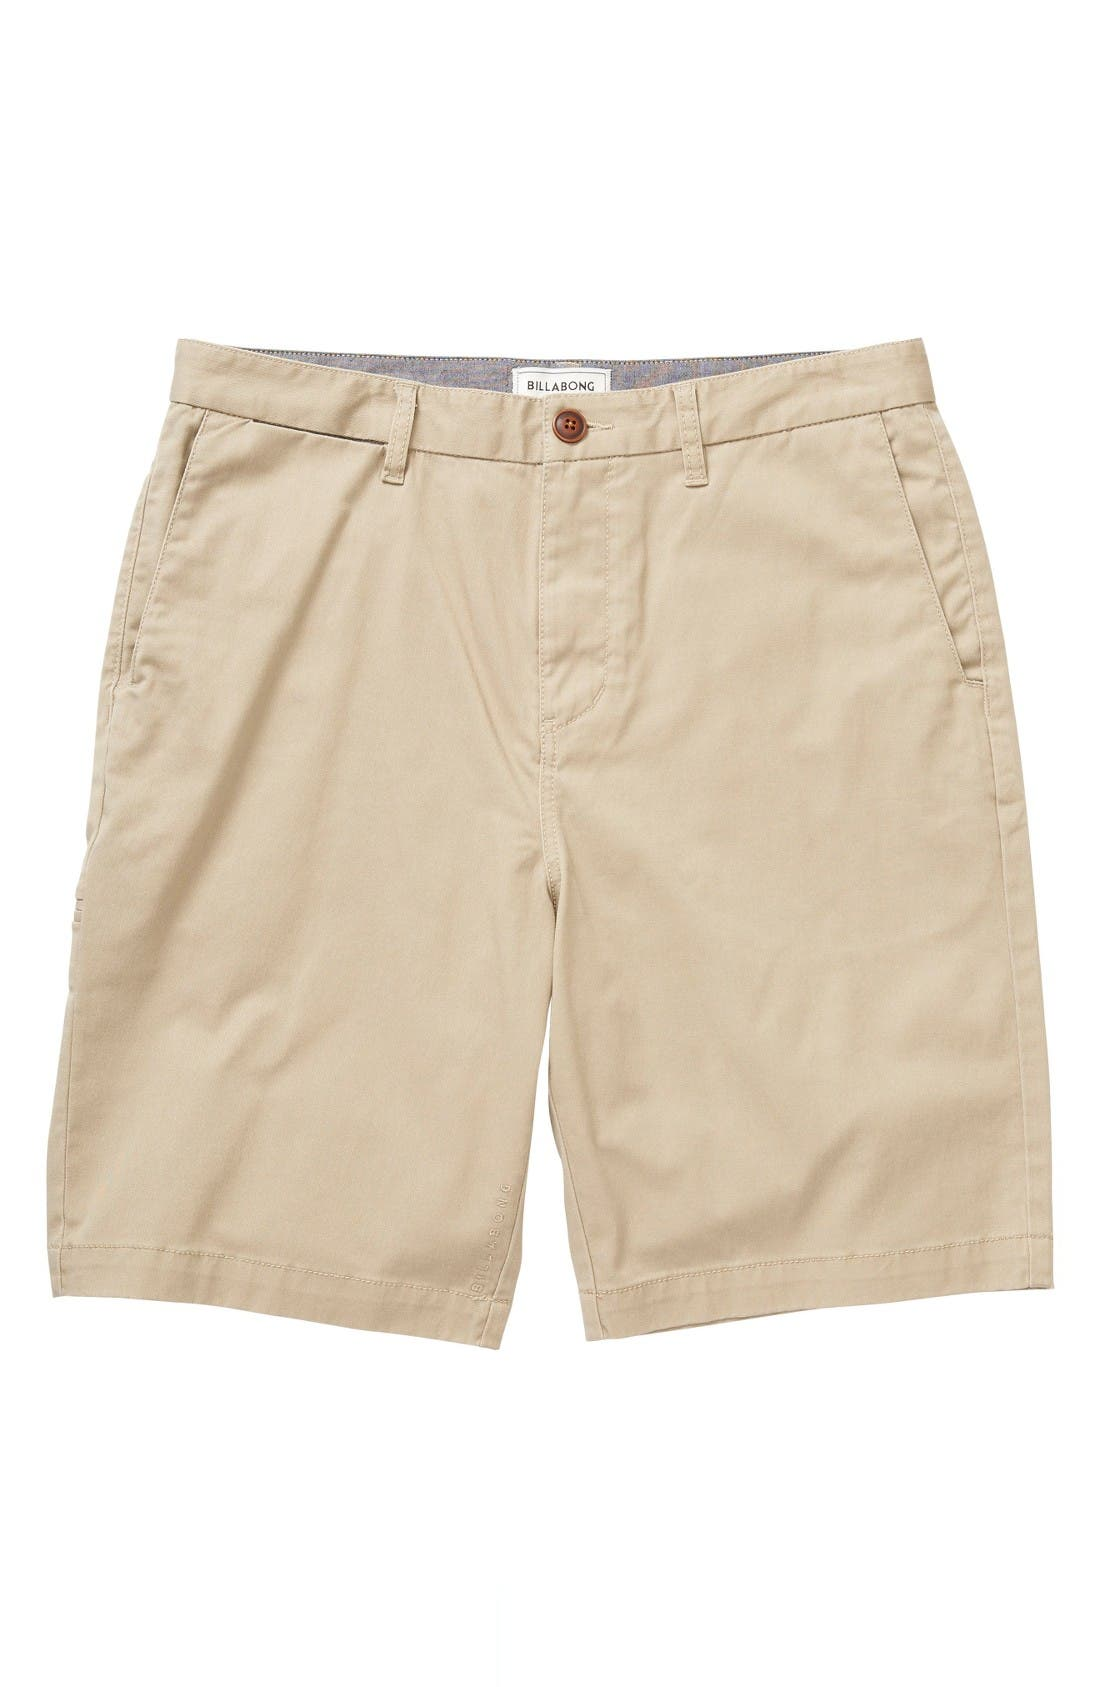 Billabong 'Carter' Cotton Twill Shorts (Toddler Boys & Little Boys)